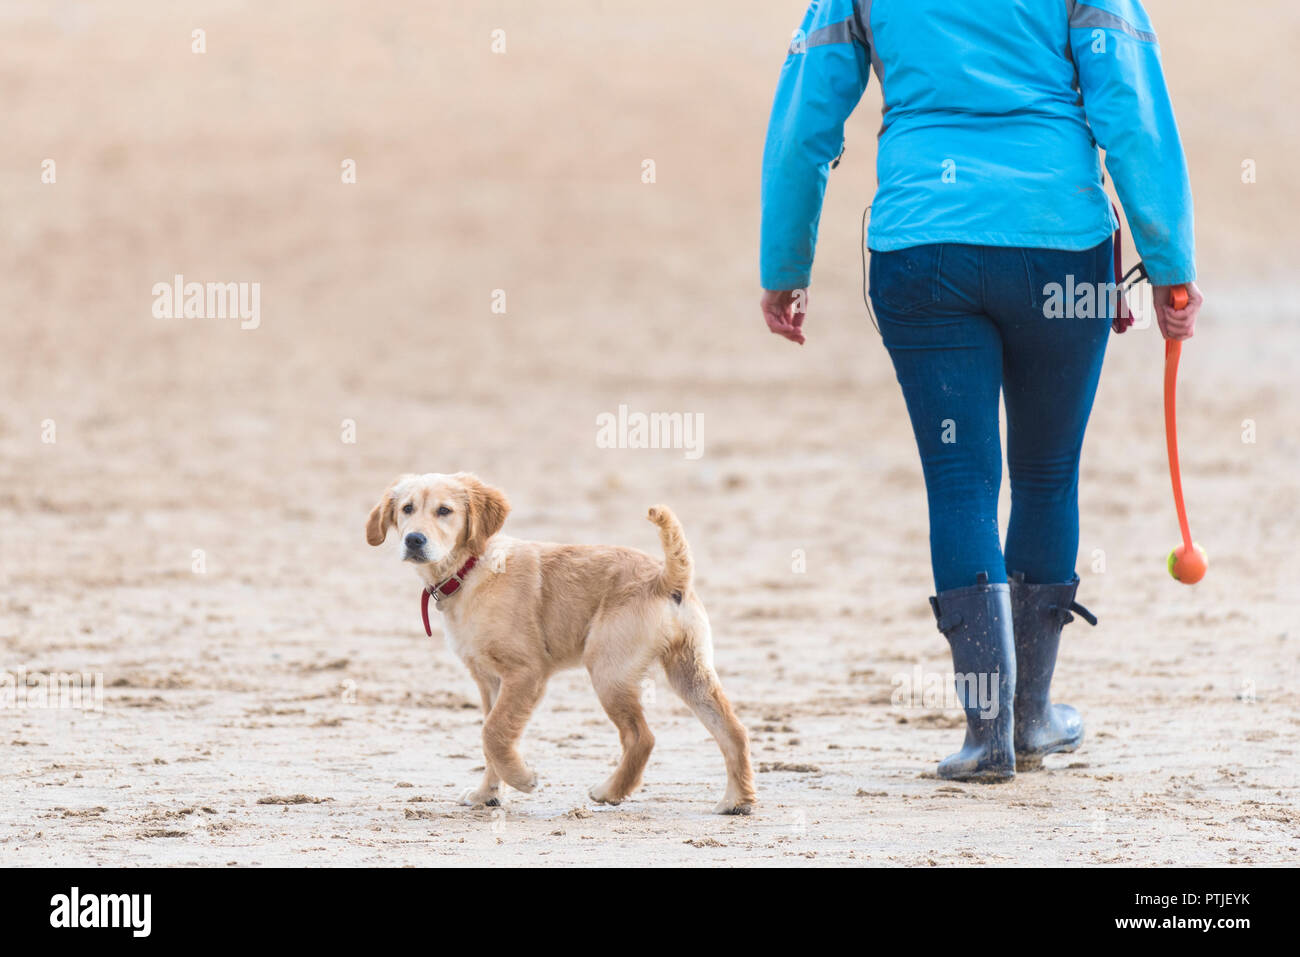 A Golden Retriever Puppy Walking With Its Owner On A Beach Stock Photo Alamy